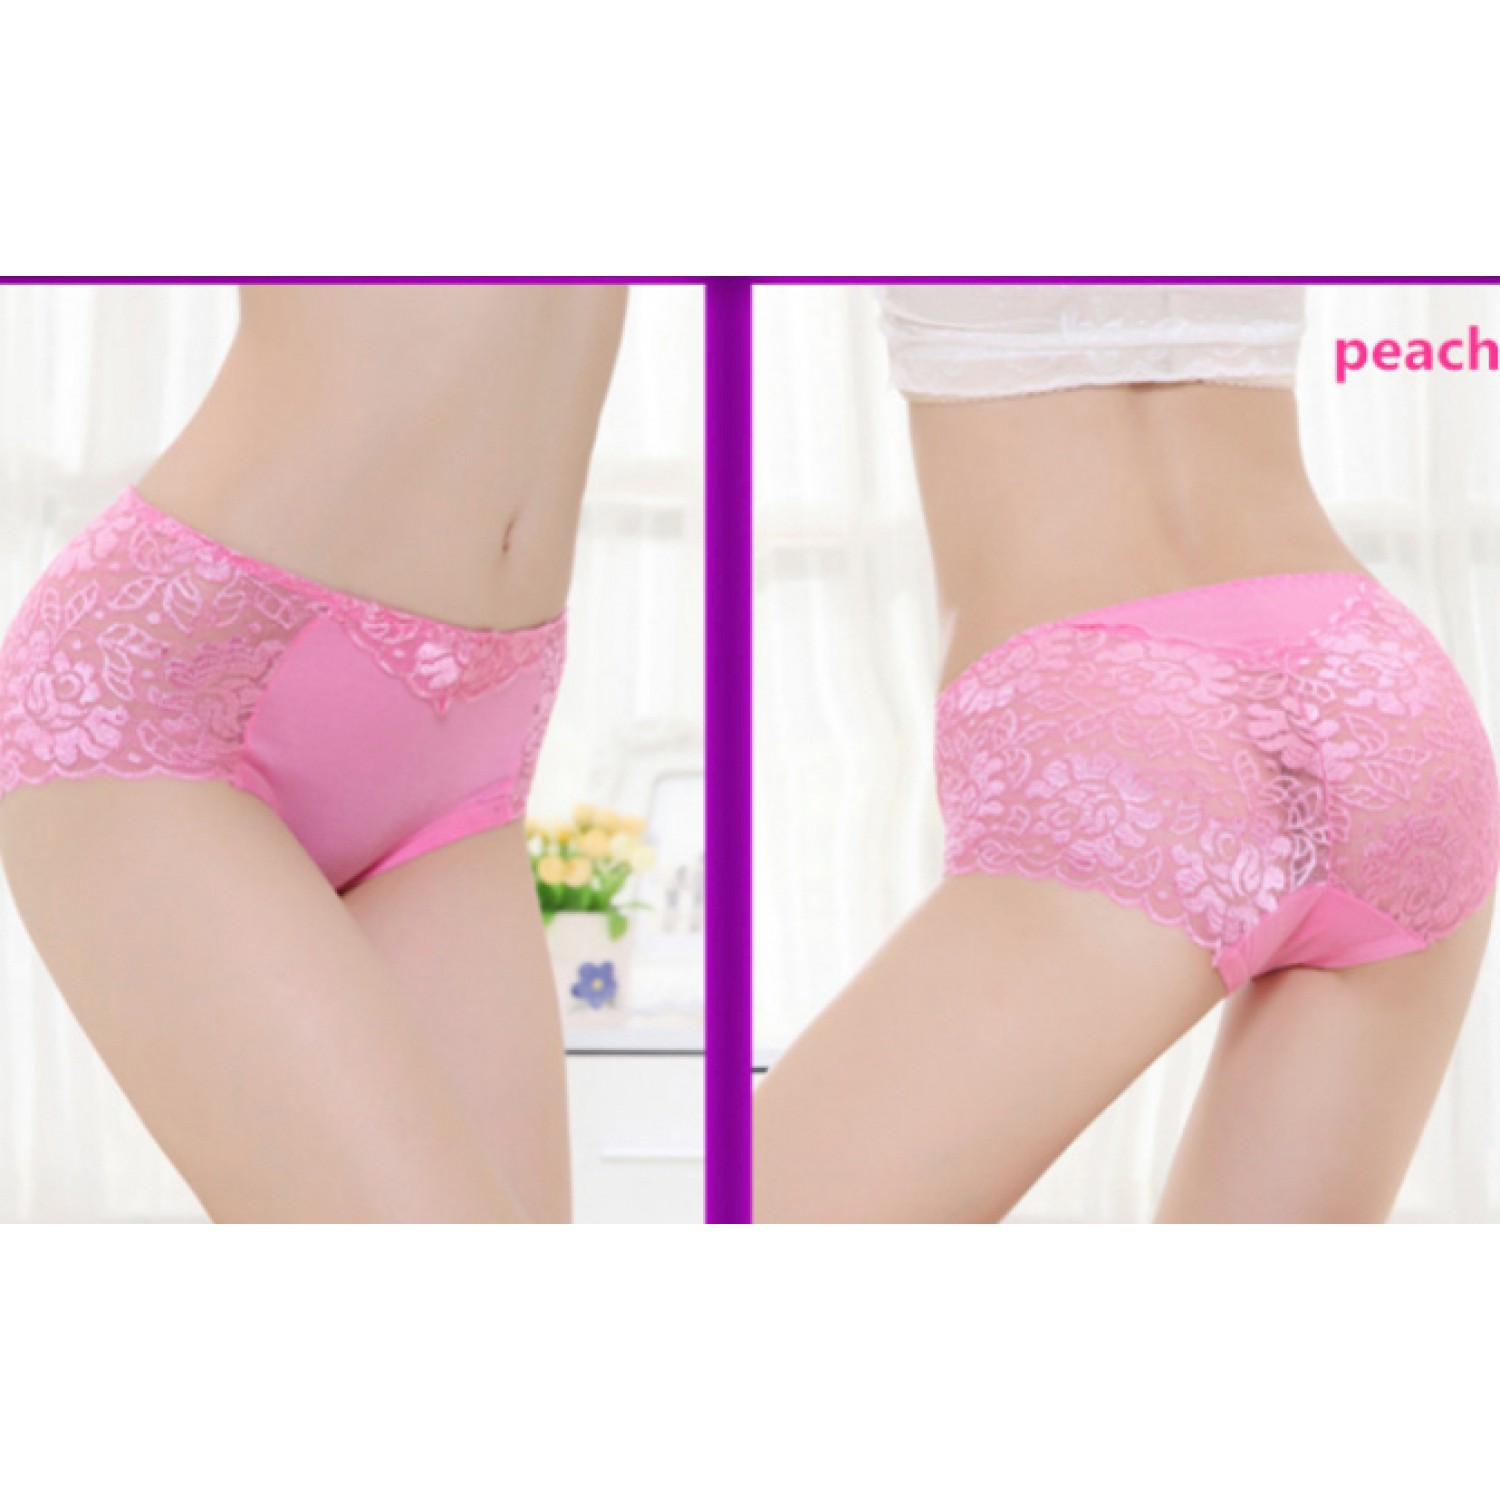 gojilove self lacy peach panty